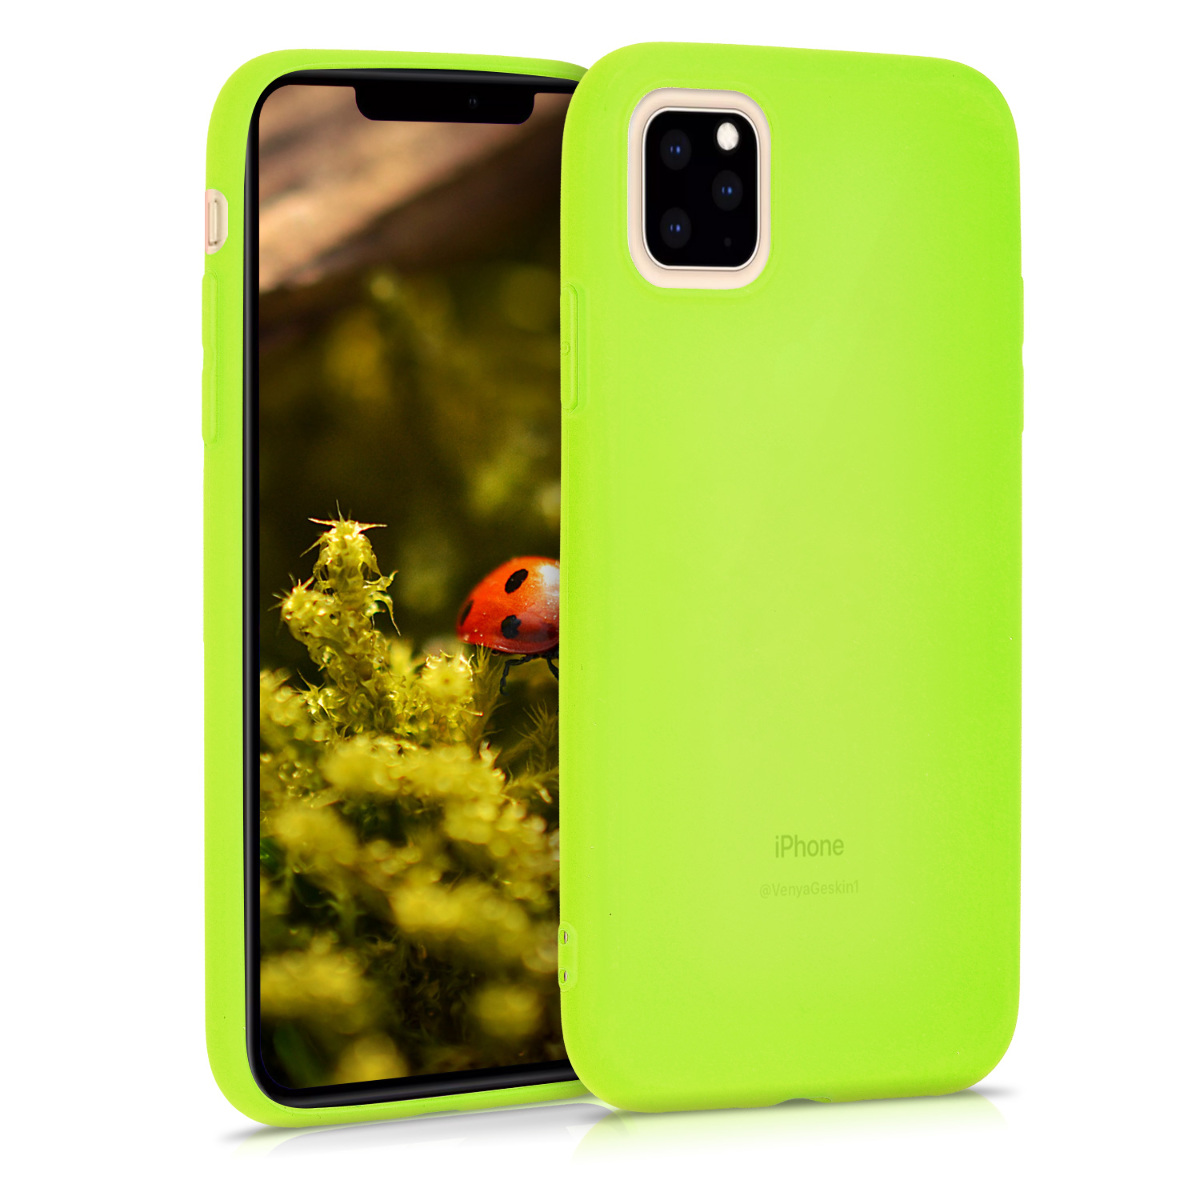 KW Θήκη Σιλικόνης Apple iPhone 11 Pro - Neon Yellow (49781.75)